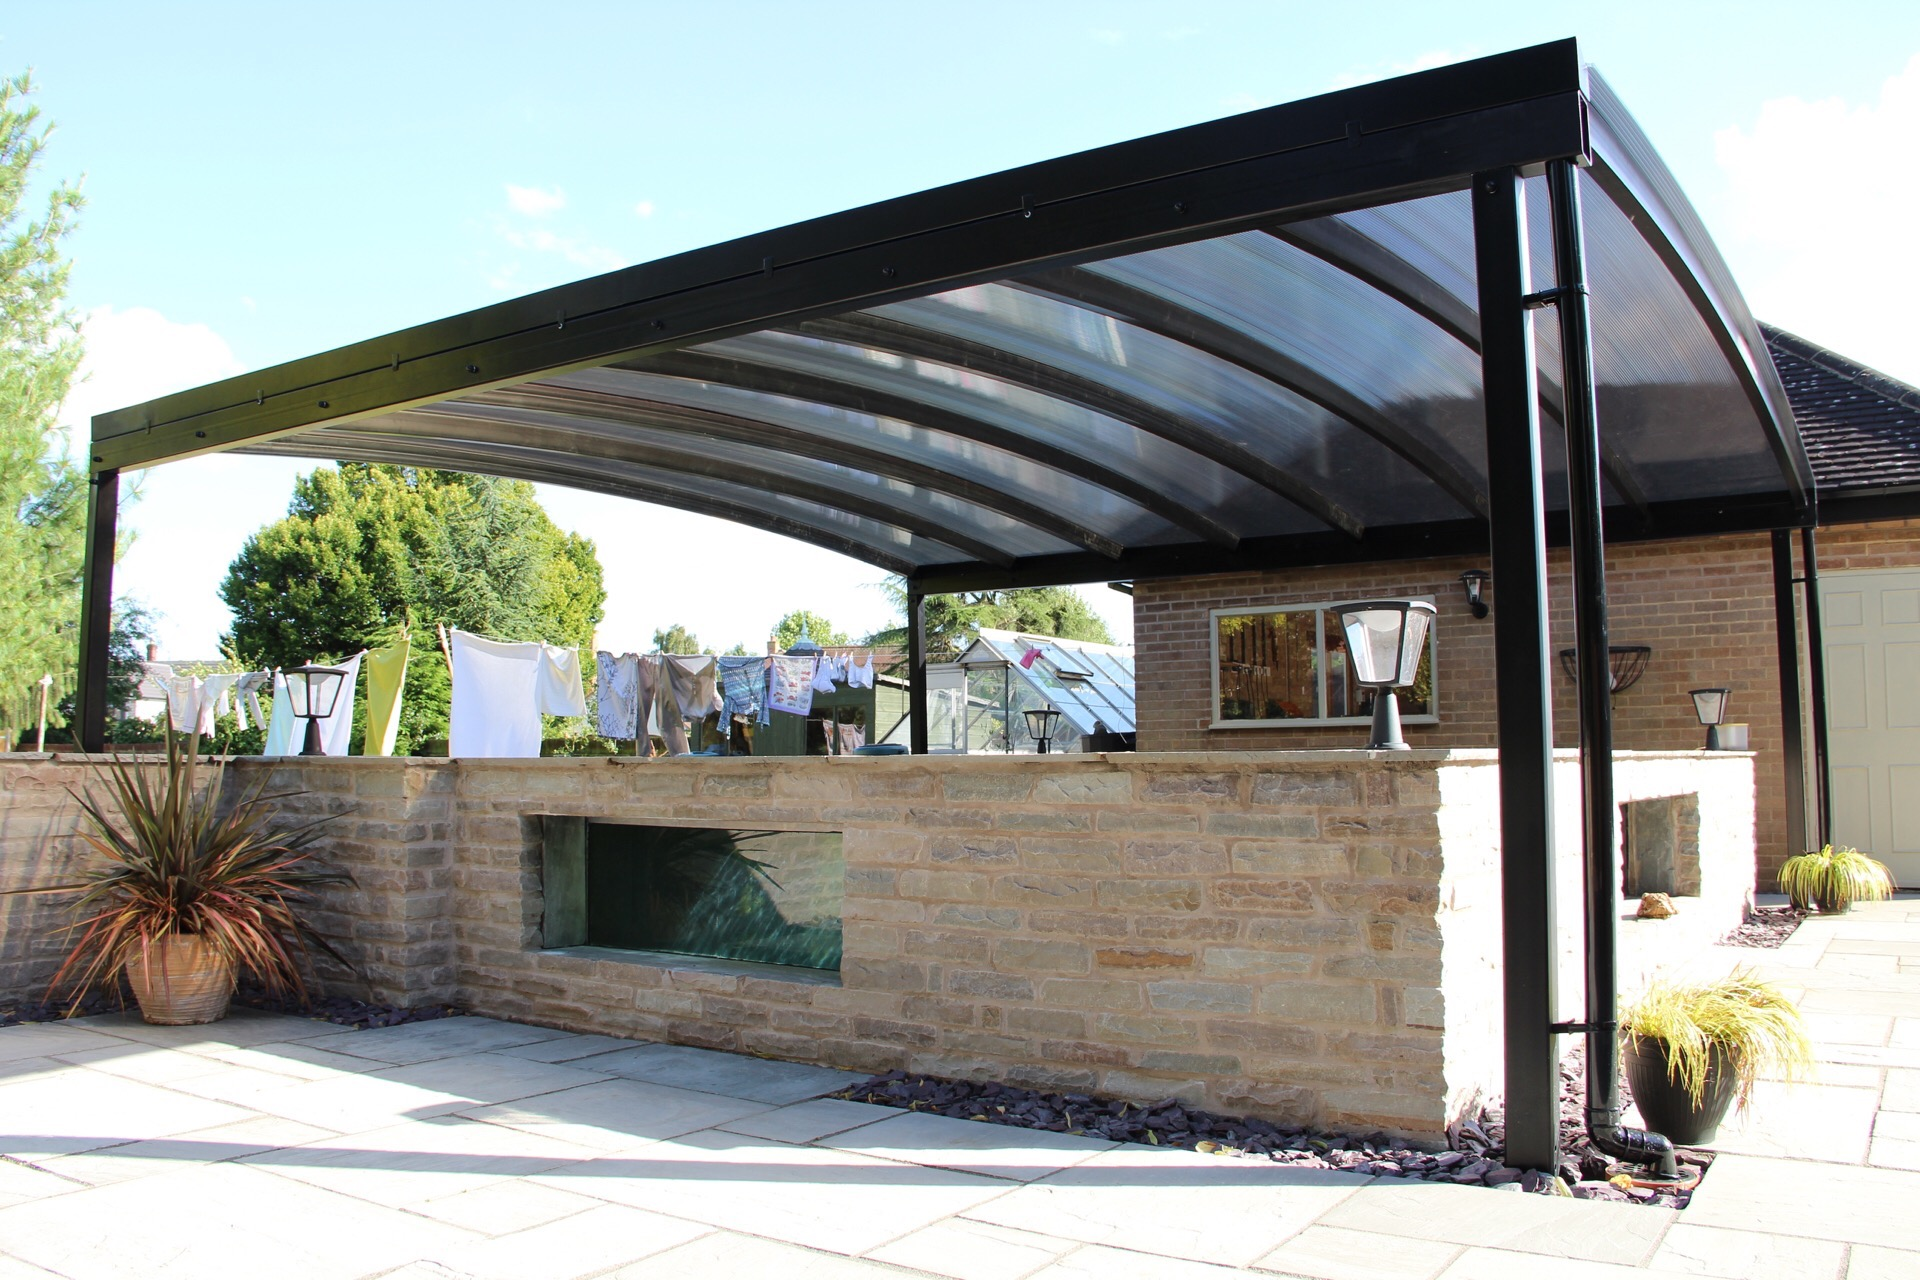 Canopies And Carports : Koi pond canopy installed in derbyshire kappion carports